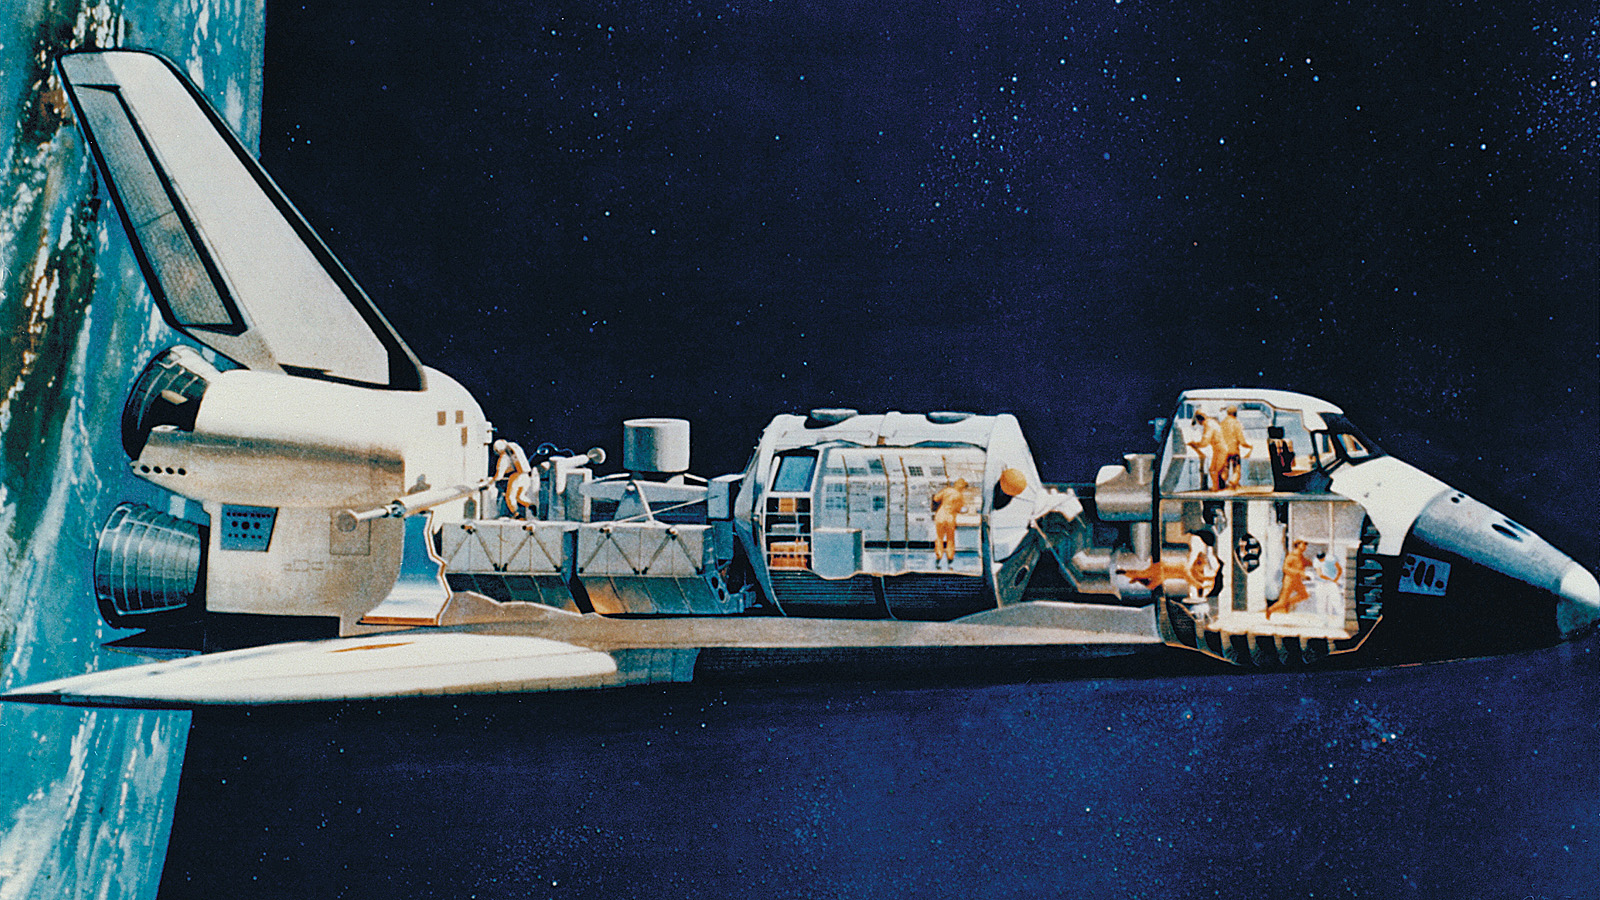 spacecraft cutaway - photo #10